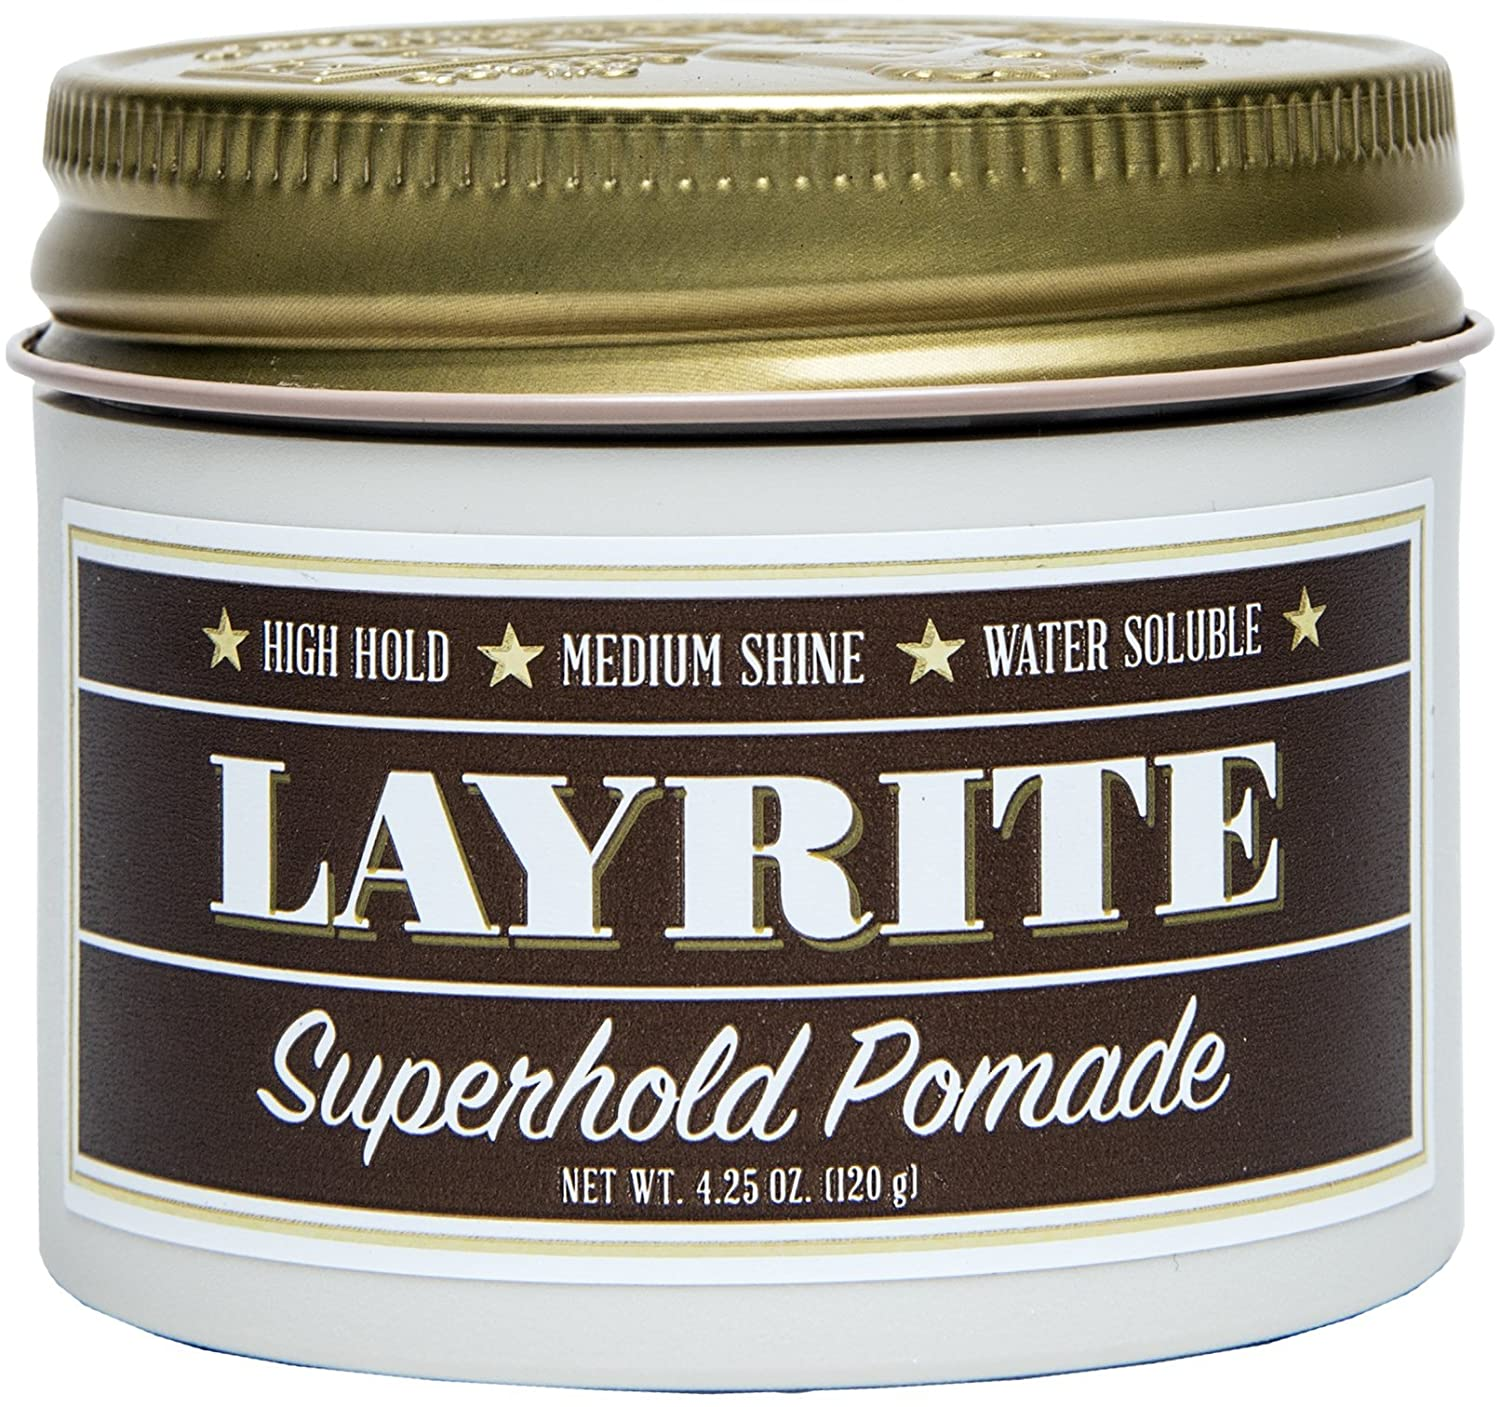 Amazon.com: Layrite Superhold Pomade, 4.25 oz: Premium Beauty